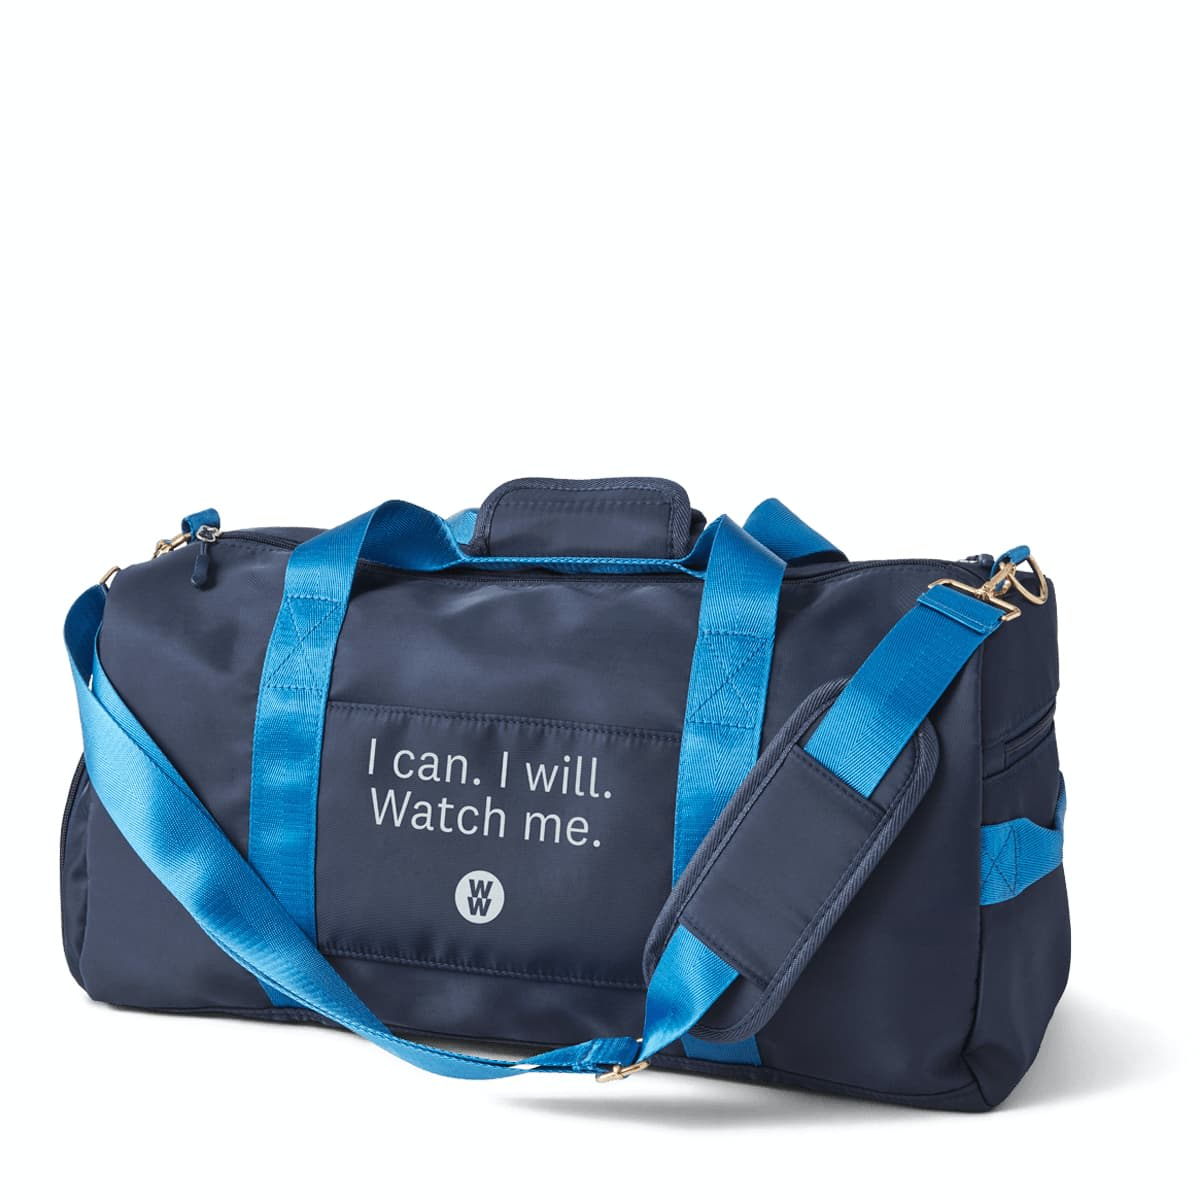 I can I will Watch Me Gym Bag - WW Gym Bag with shoe compartment